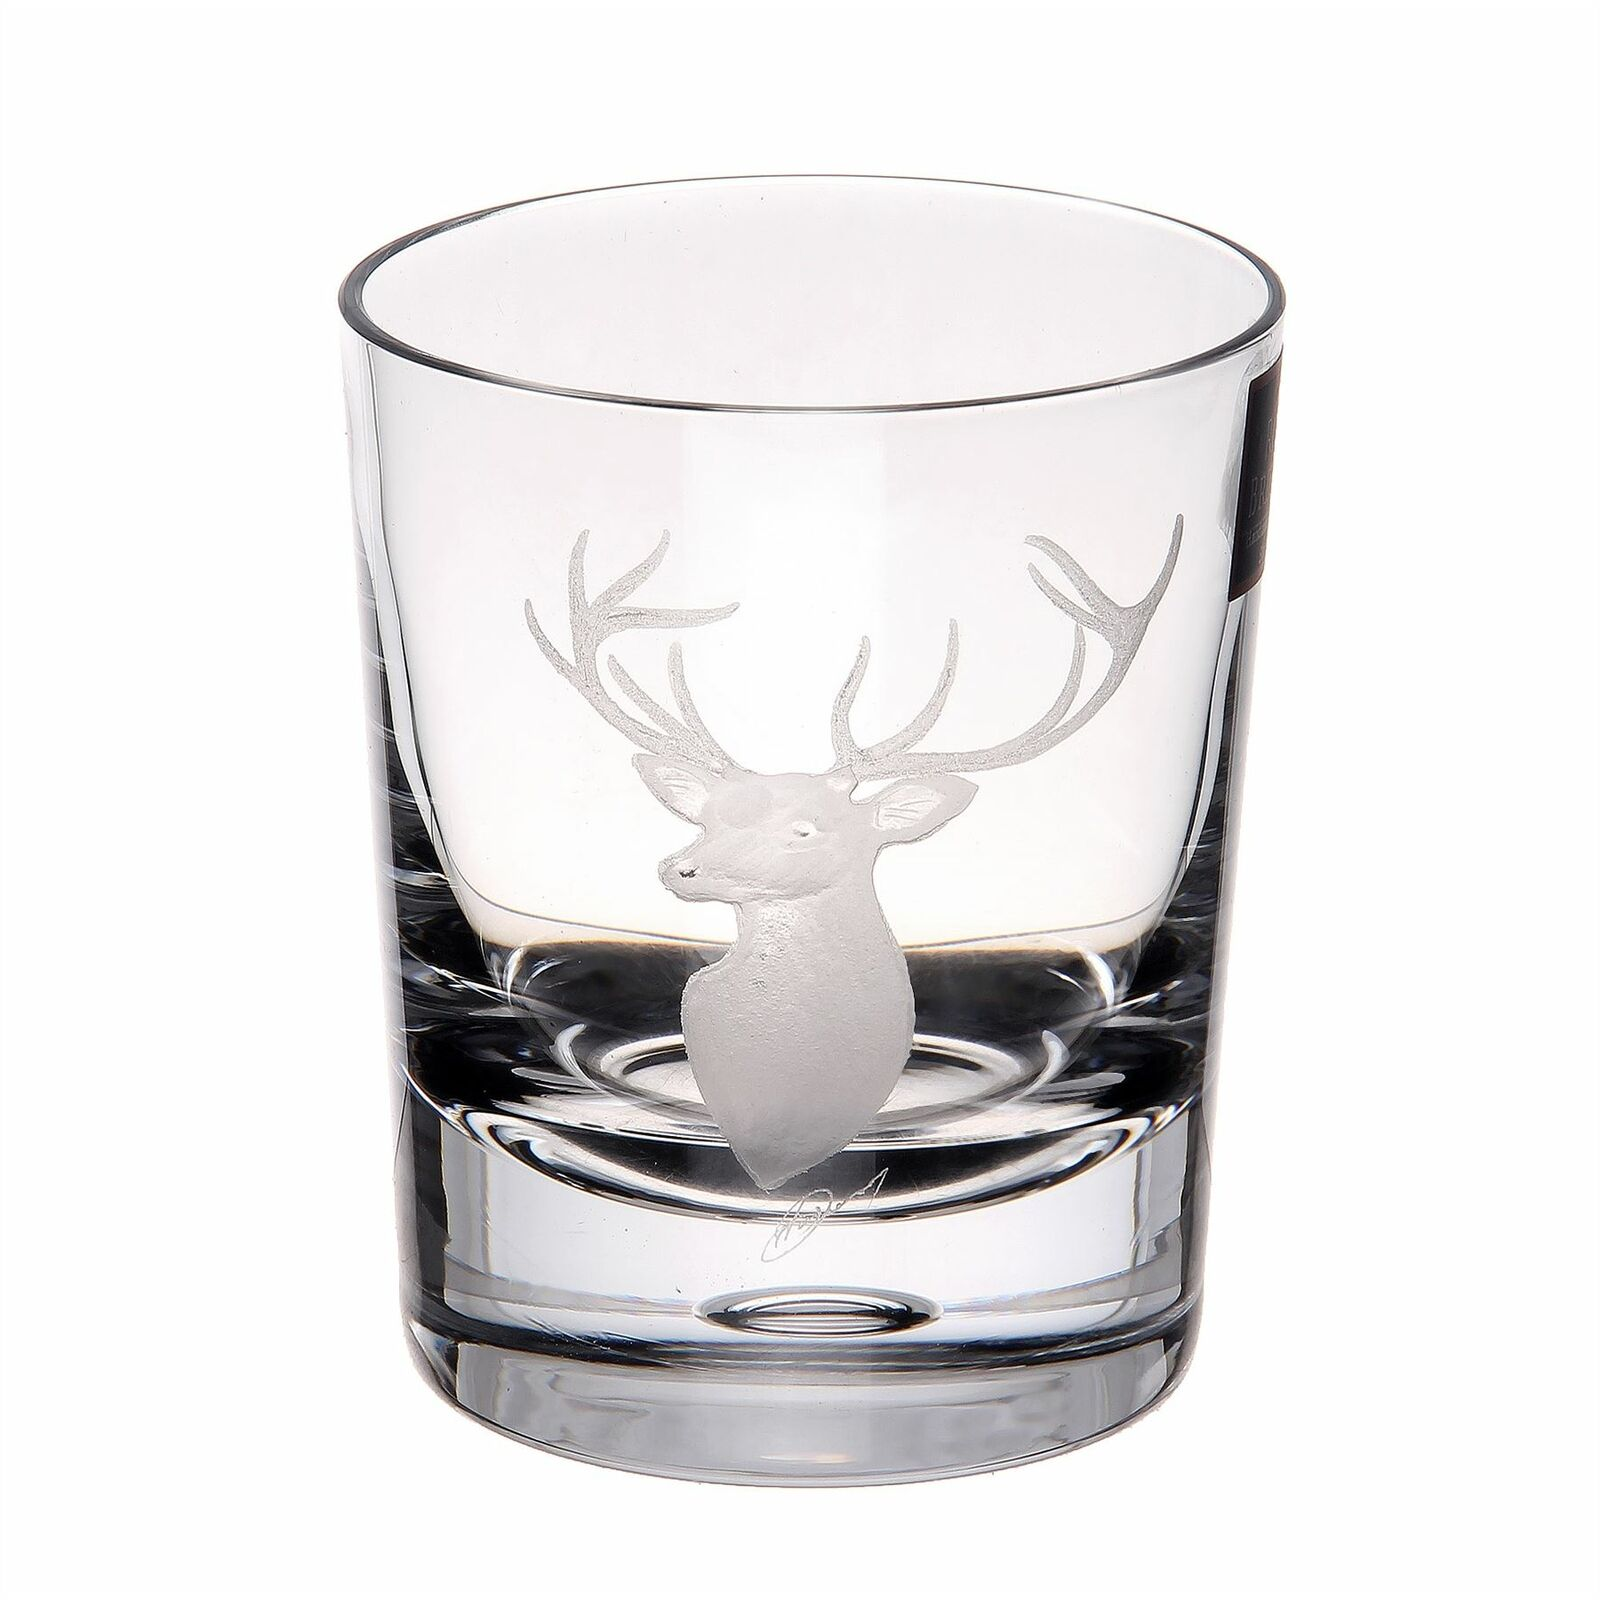 Royal Brierley Engraved rot Stag Stag Stag Tumbler 0.30L a1c01c